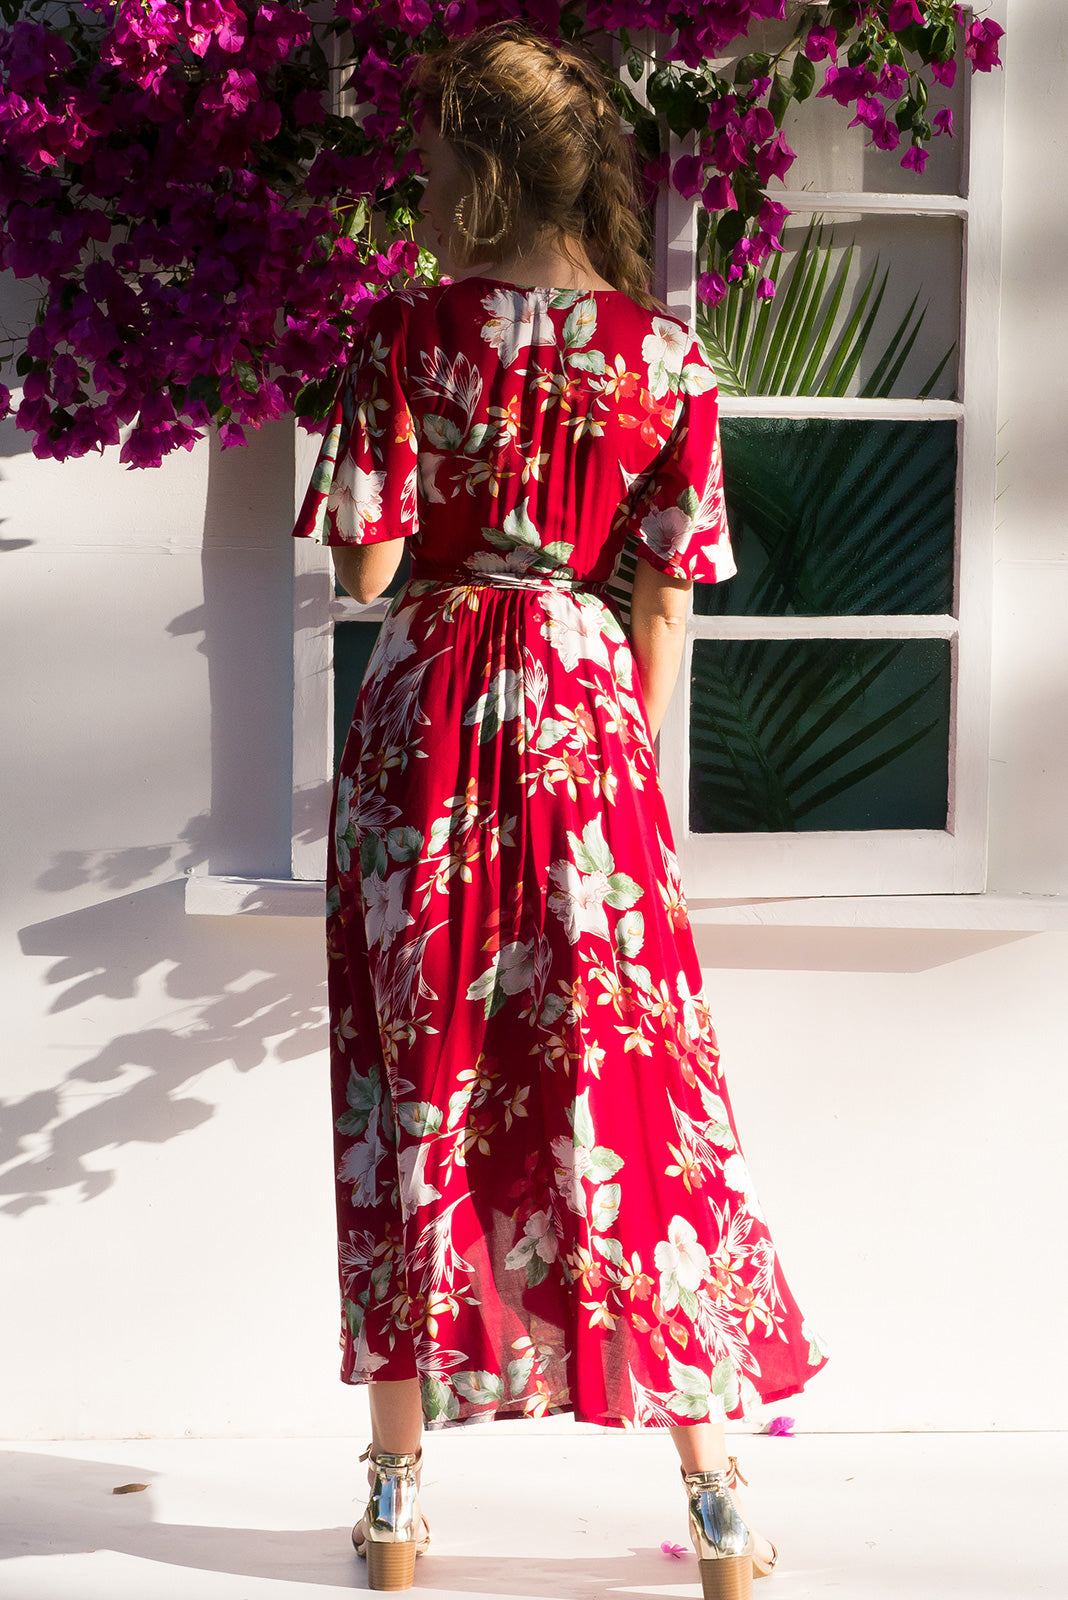 Petal Sweet Heart Maxi Wrap dress with flutter sleeves and a stunning bright red tropical floral print